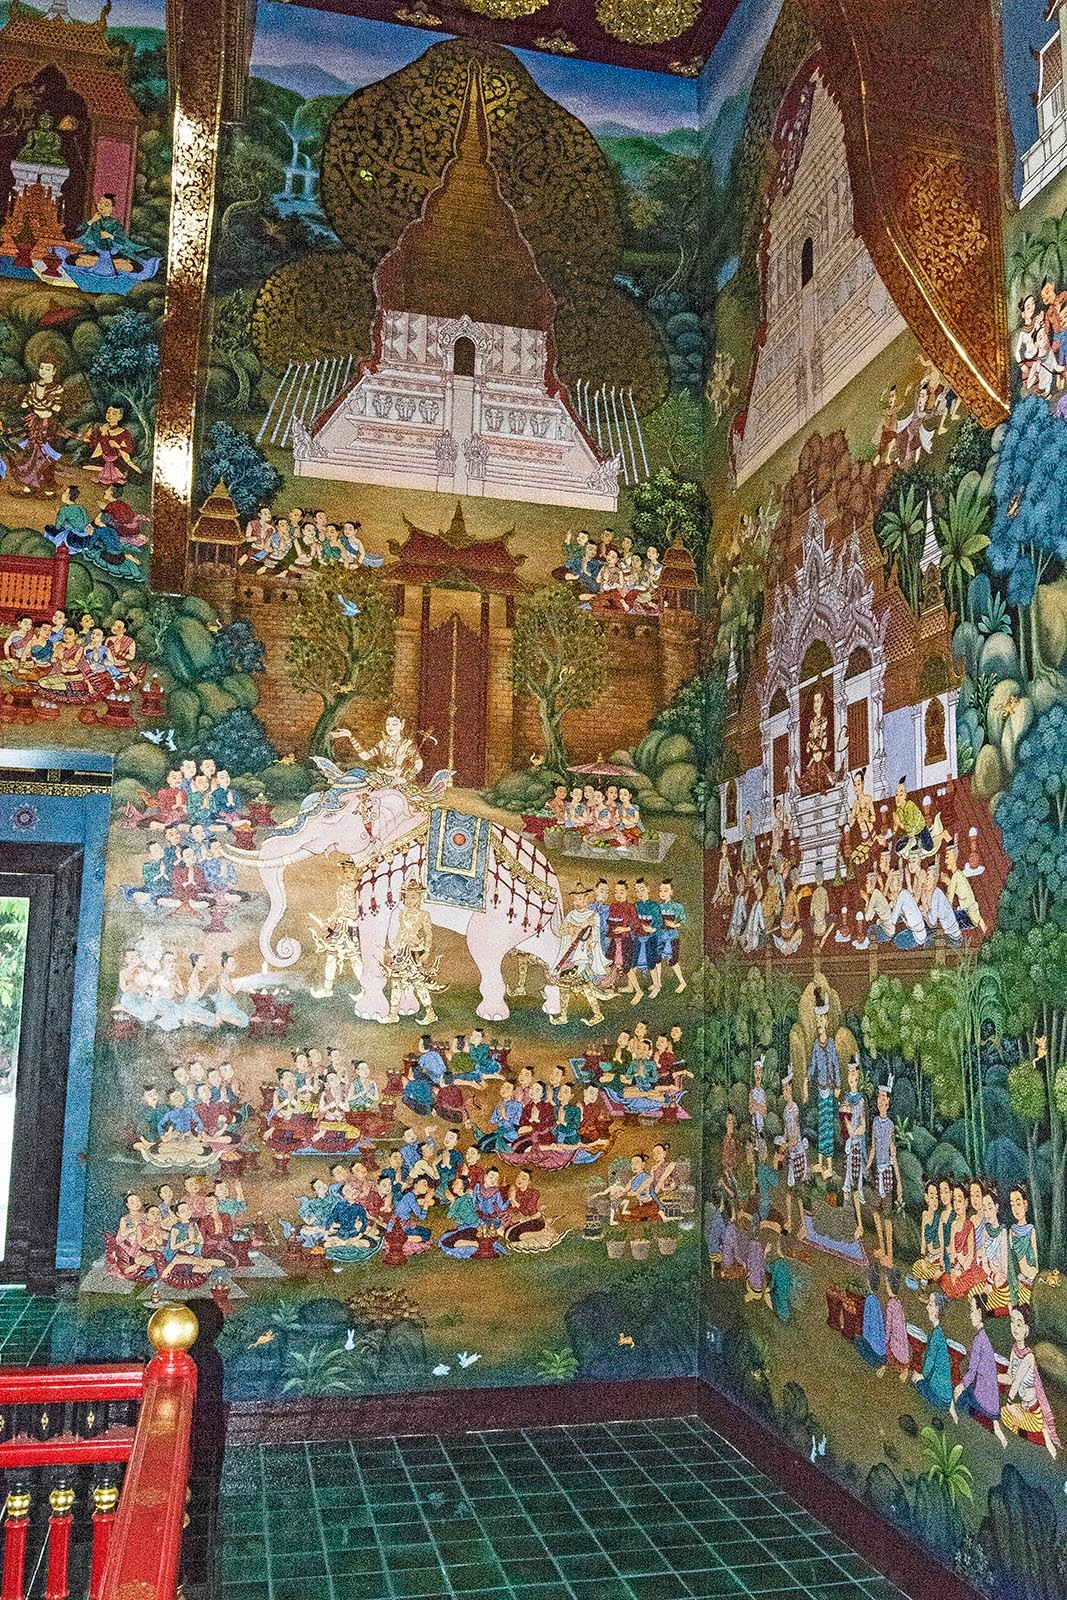 Gorgeous Greens & Blues of Thai Frescoes by TerraEncounters